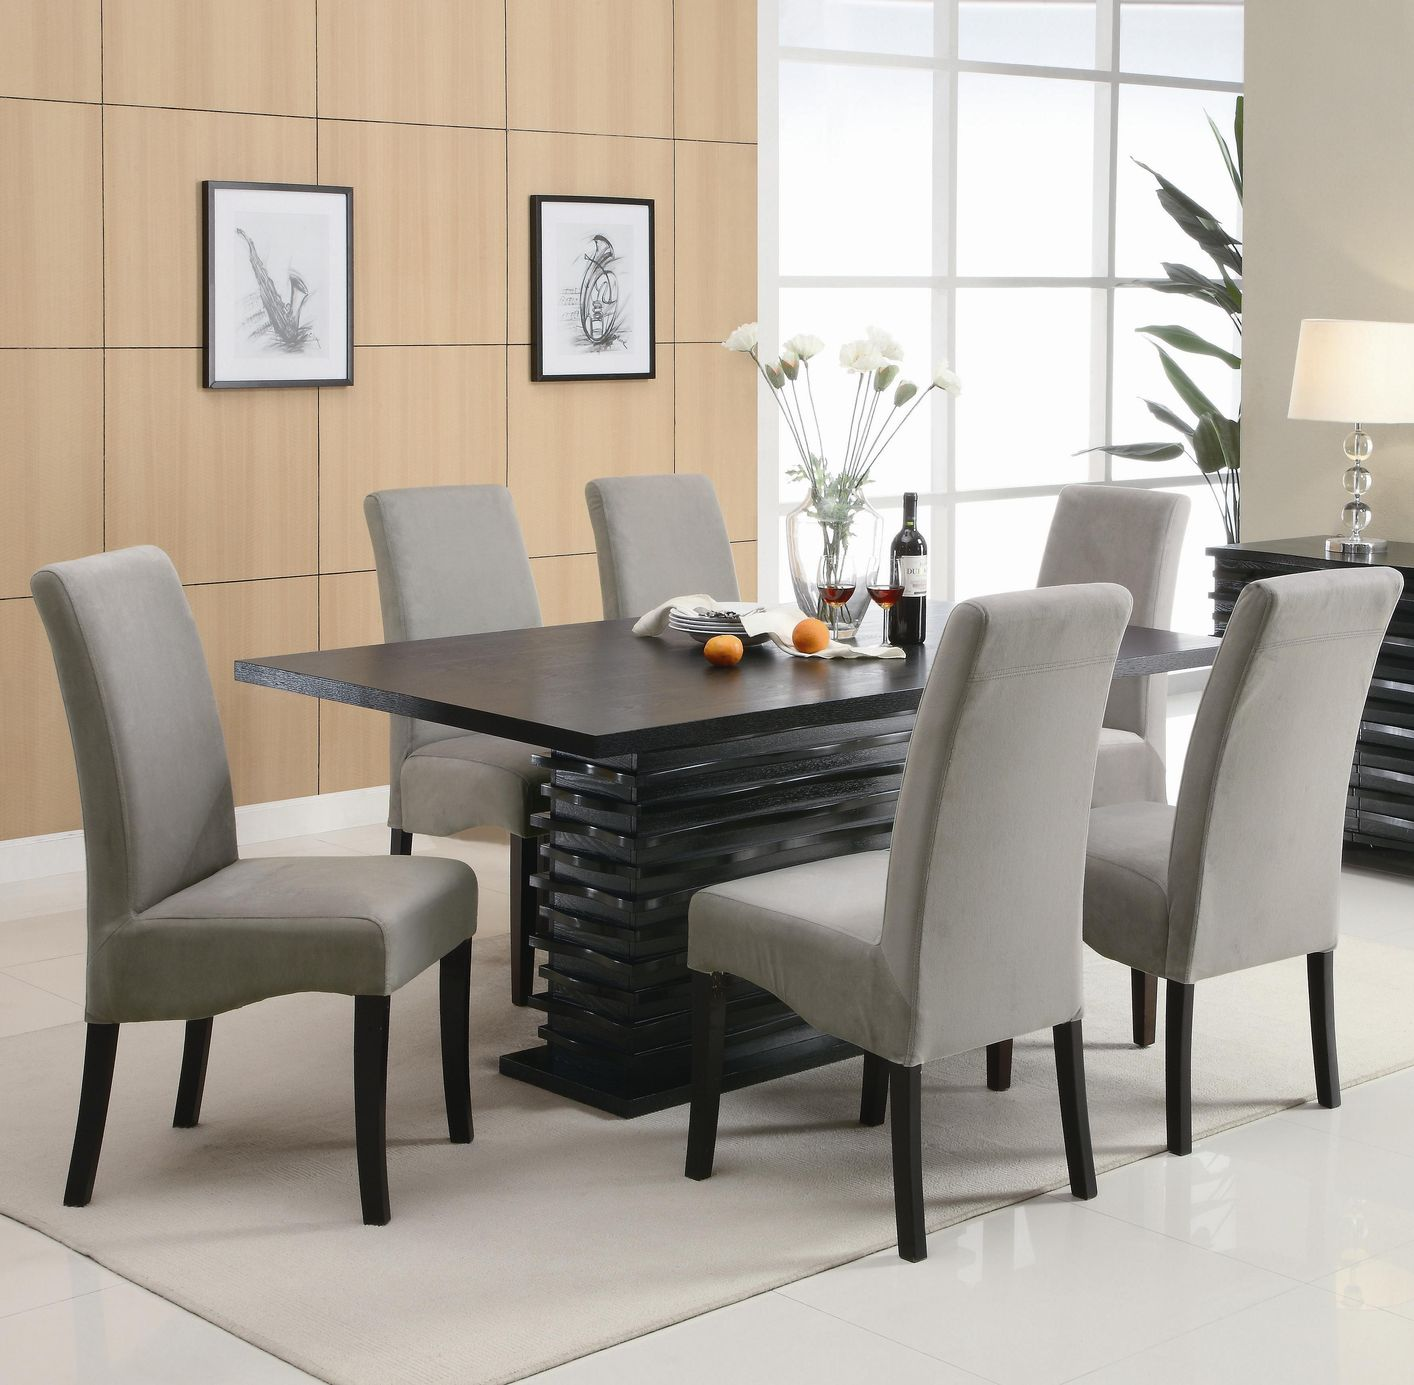 Coaster Stanton 102061 102062 Black Wood Dining Table Set